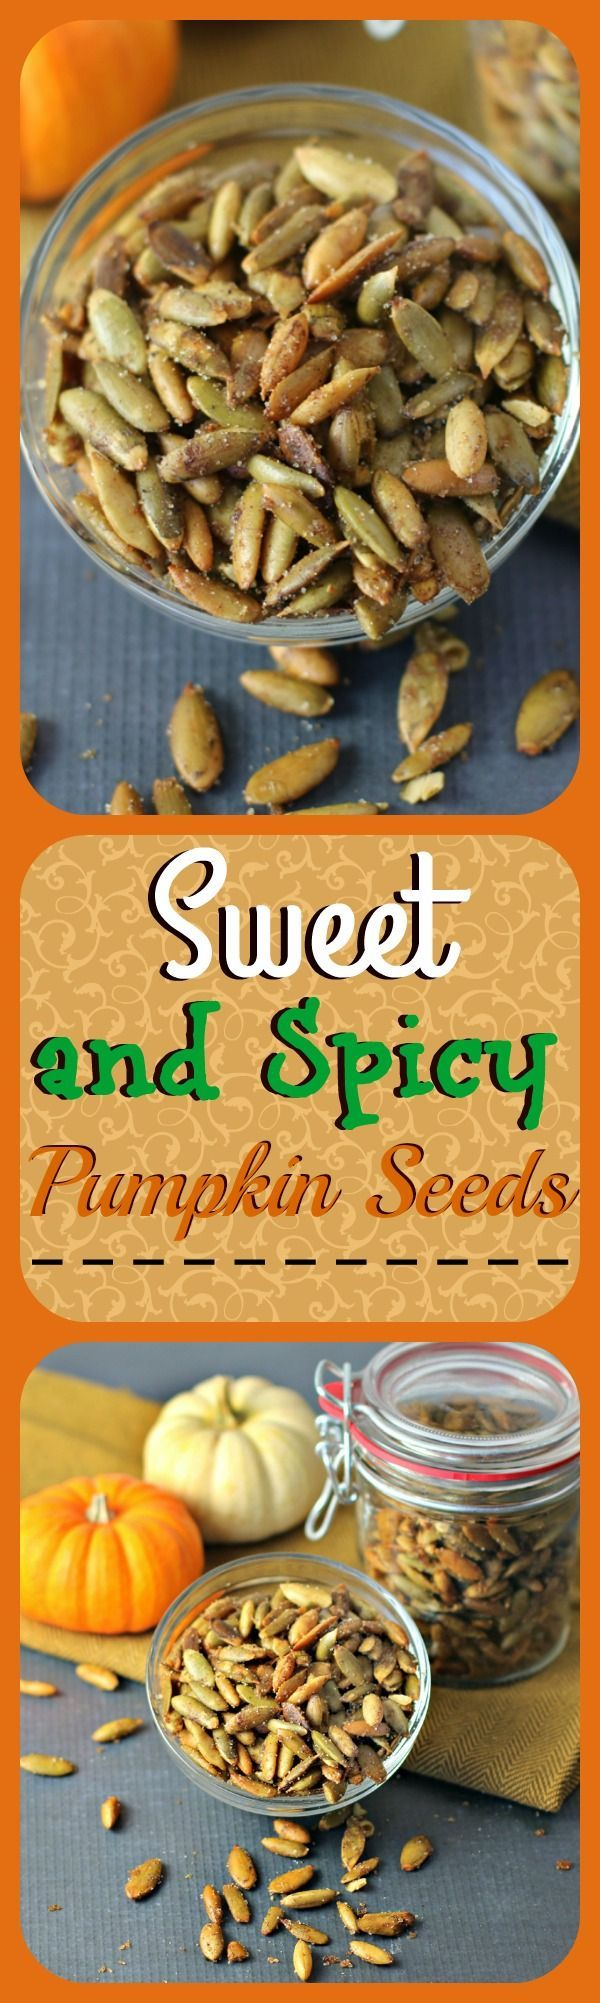 Sweet and Spicy Pumpkin Seeds are butter roasted with 7 spices that will keep your friends guessing! These snappy little seeds are very addicting!